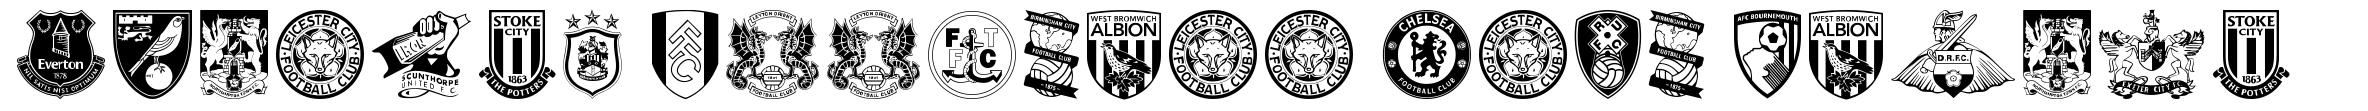 English Football Club Badges font